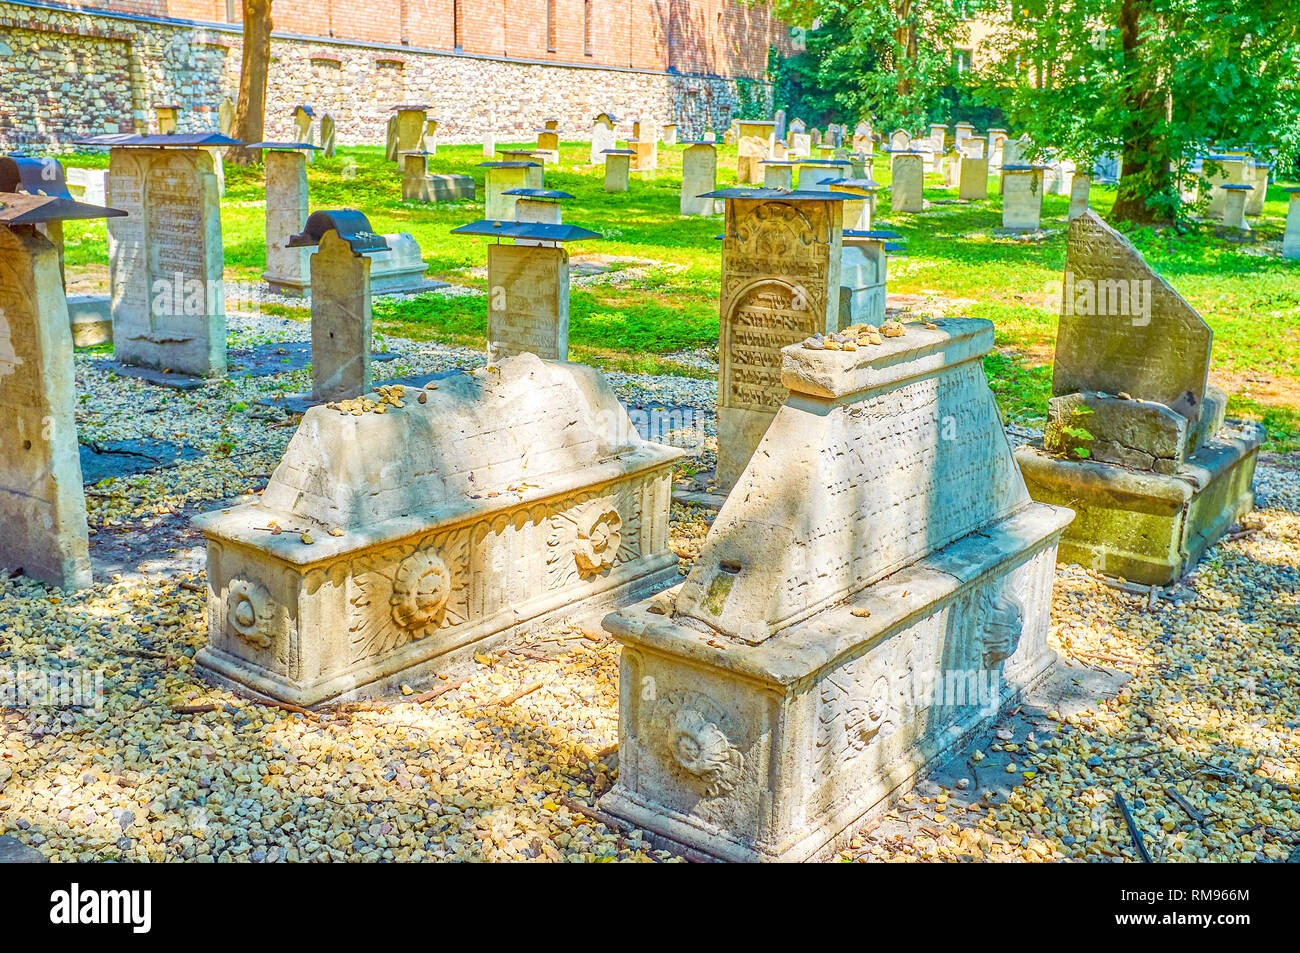 KRAKOW, POLAND - JUNE 21, 2018: The carved tombstones with inscriptions in old Jewish language of historical Remah Cemetery in the center of Kazimierz - Stock Image